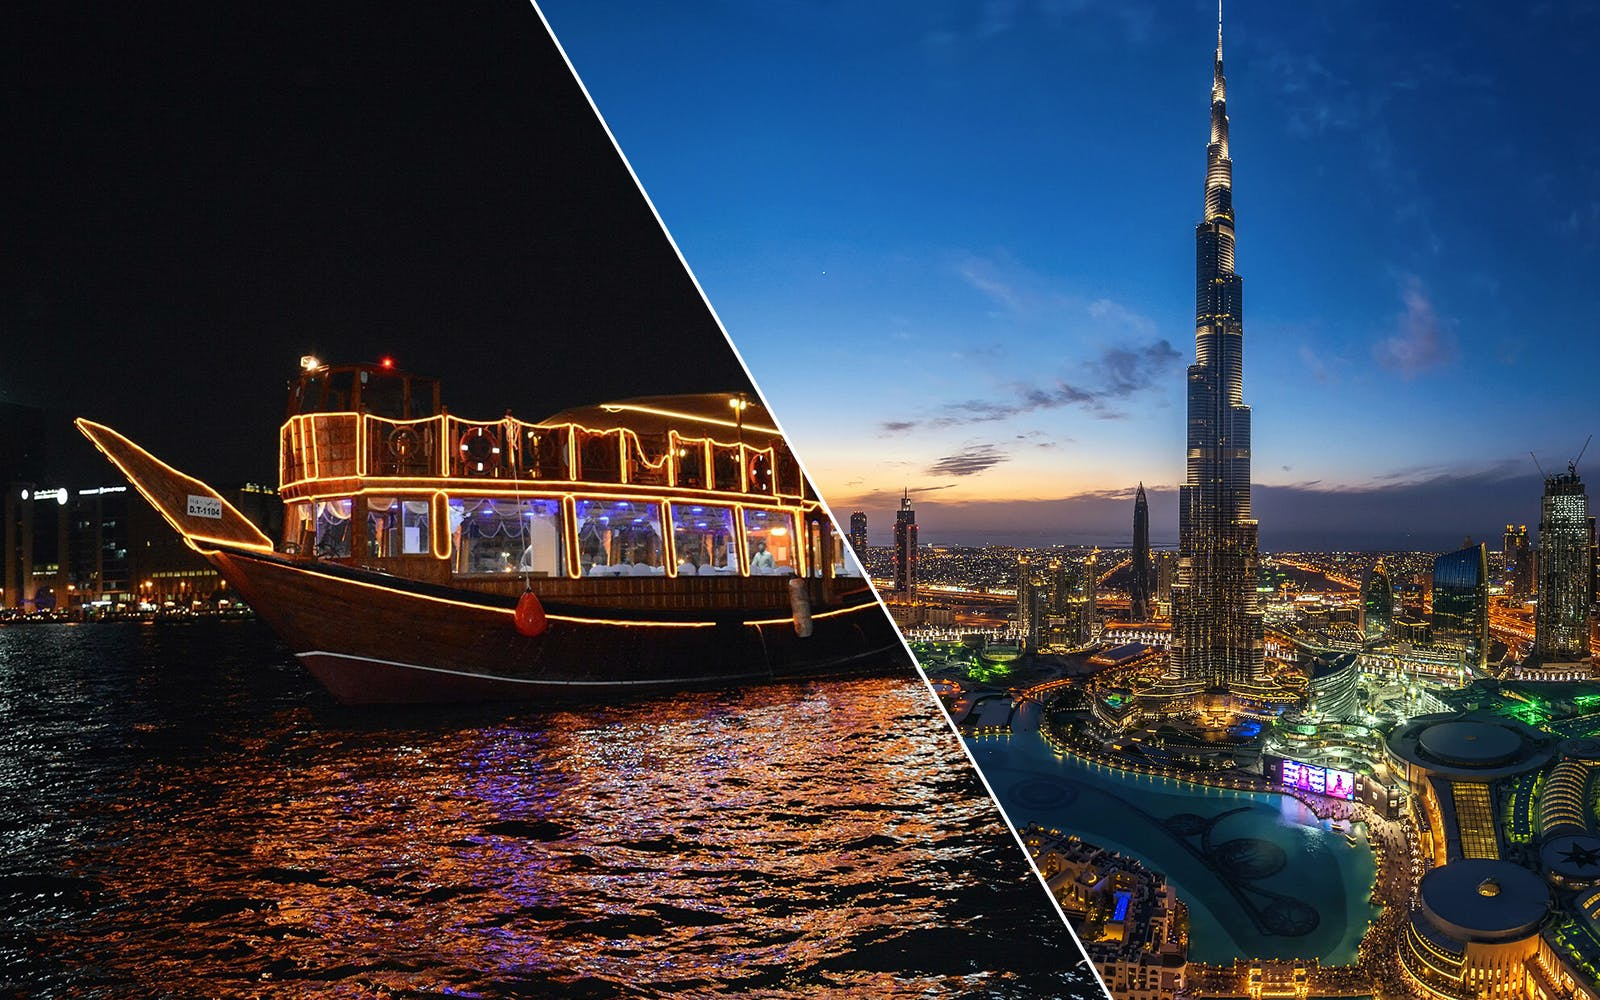 Sunset at Burj Khalifa At The Top + Dhow Creek Dinner Cruise Combo